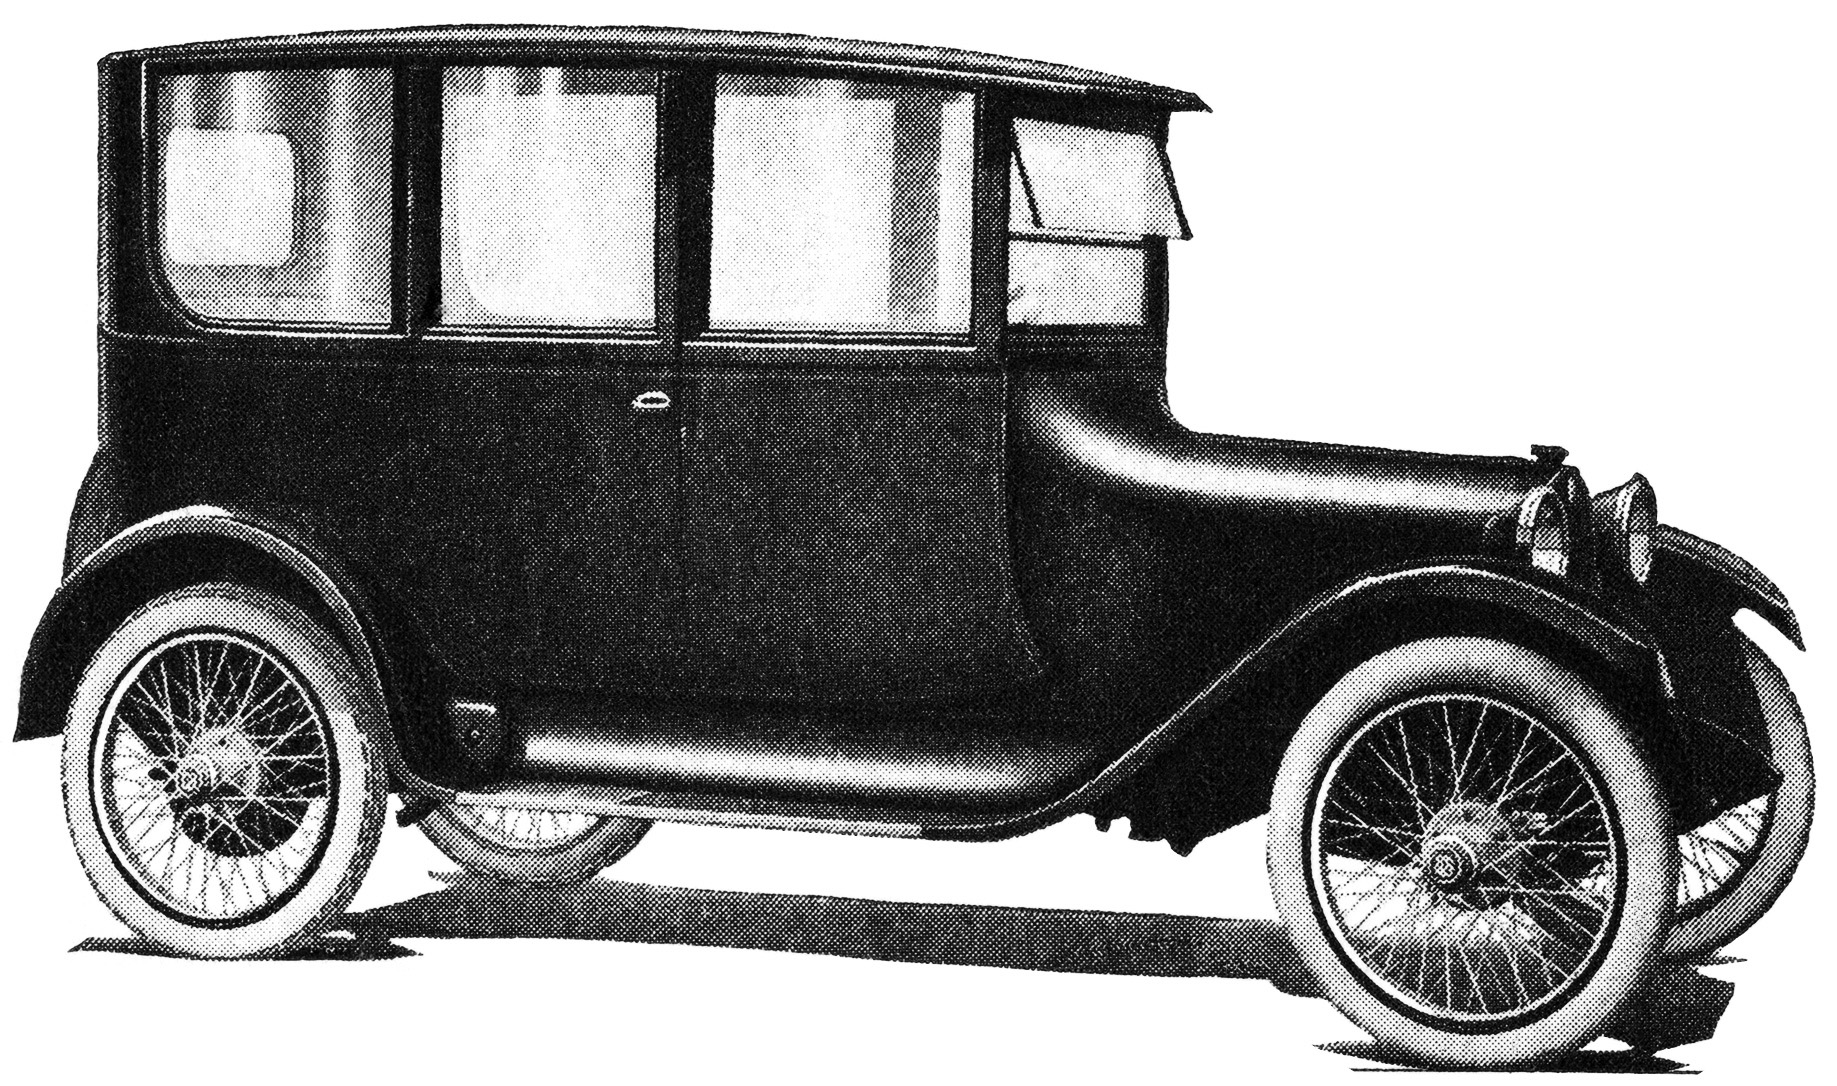 Car Old Fashioned Vehicle Black And Whit-Car Old Fashioned Vehicle Black And White Clipart Antique Car-3